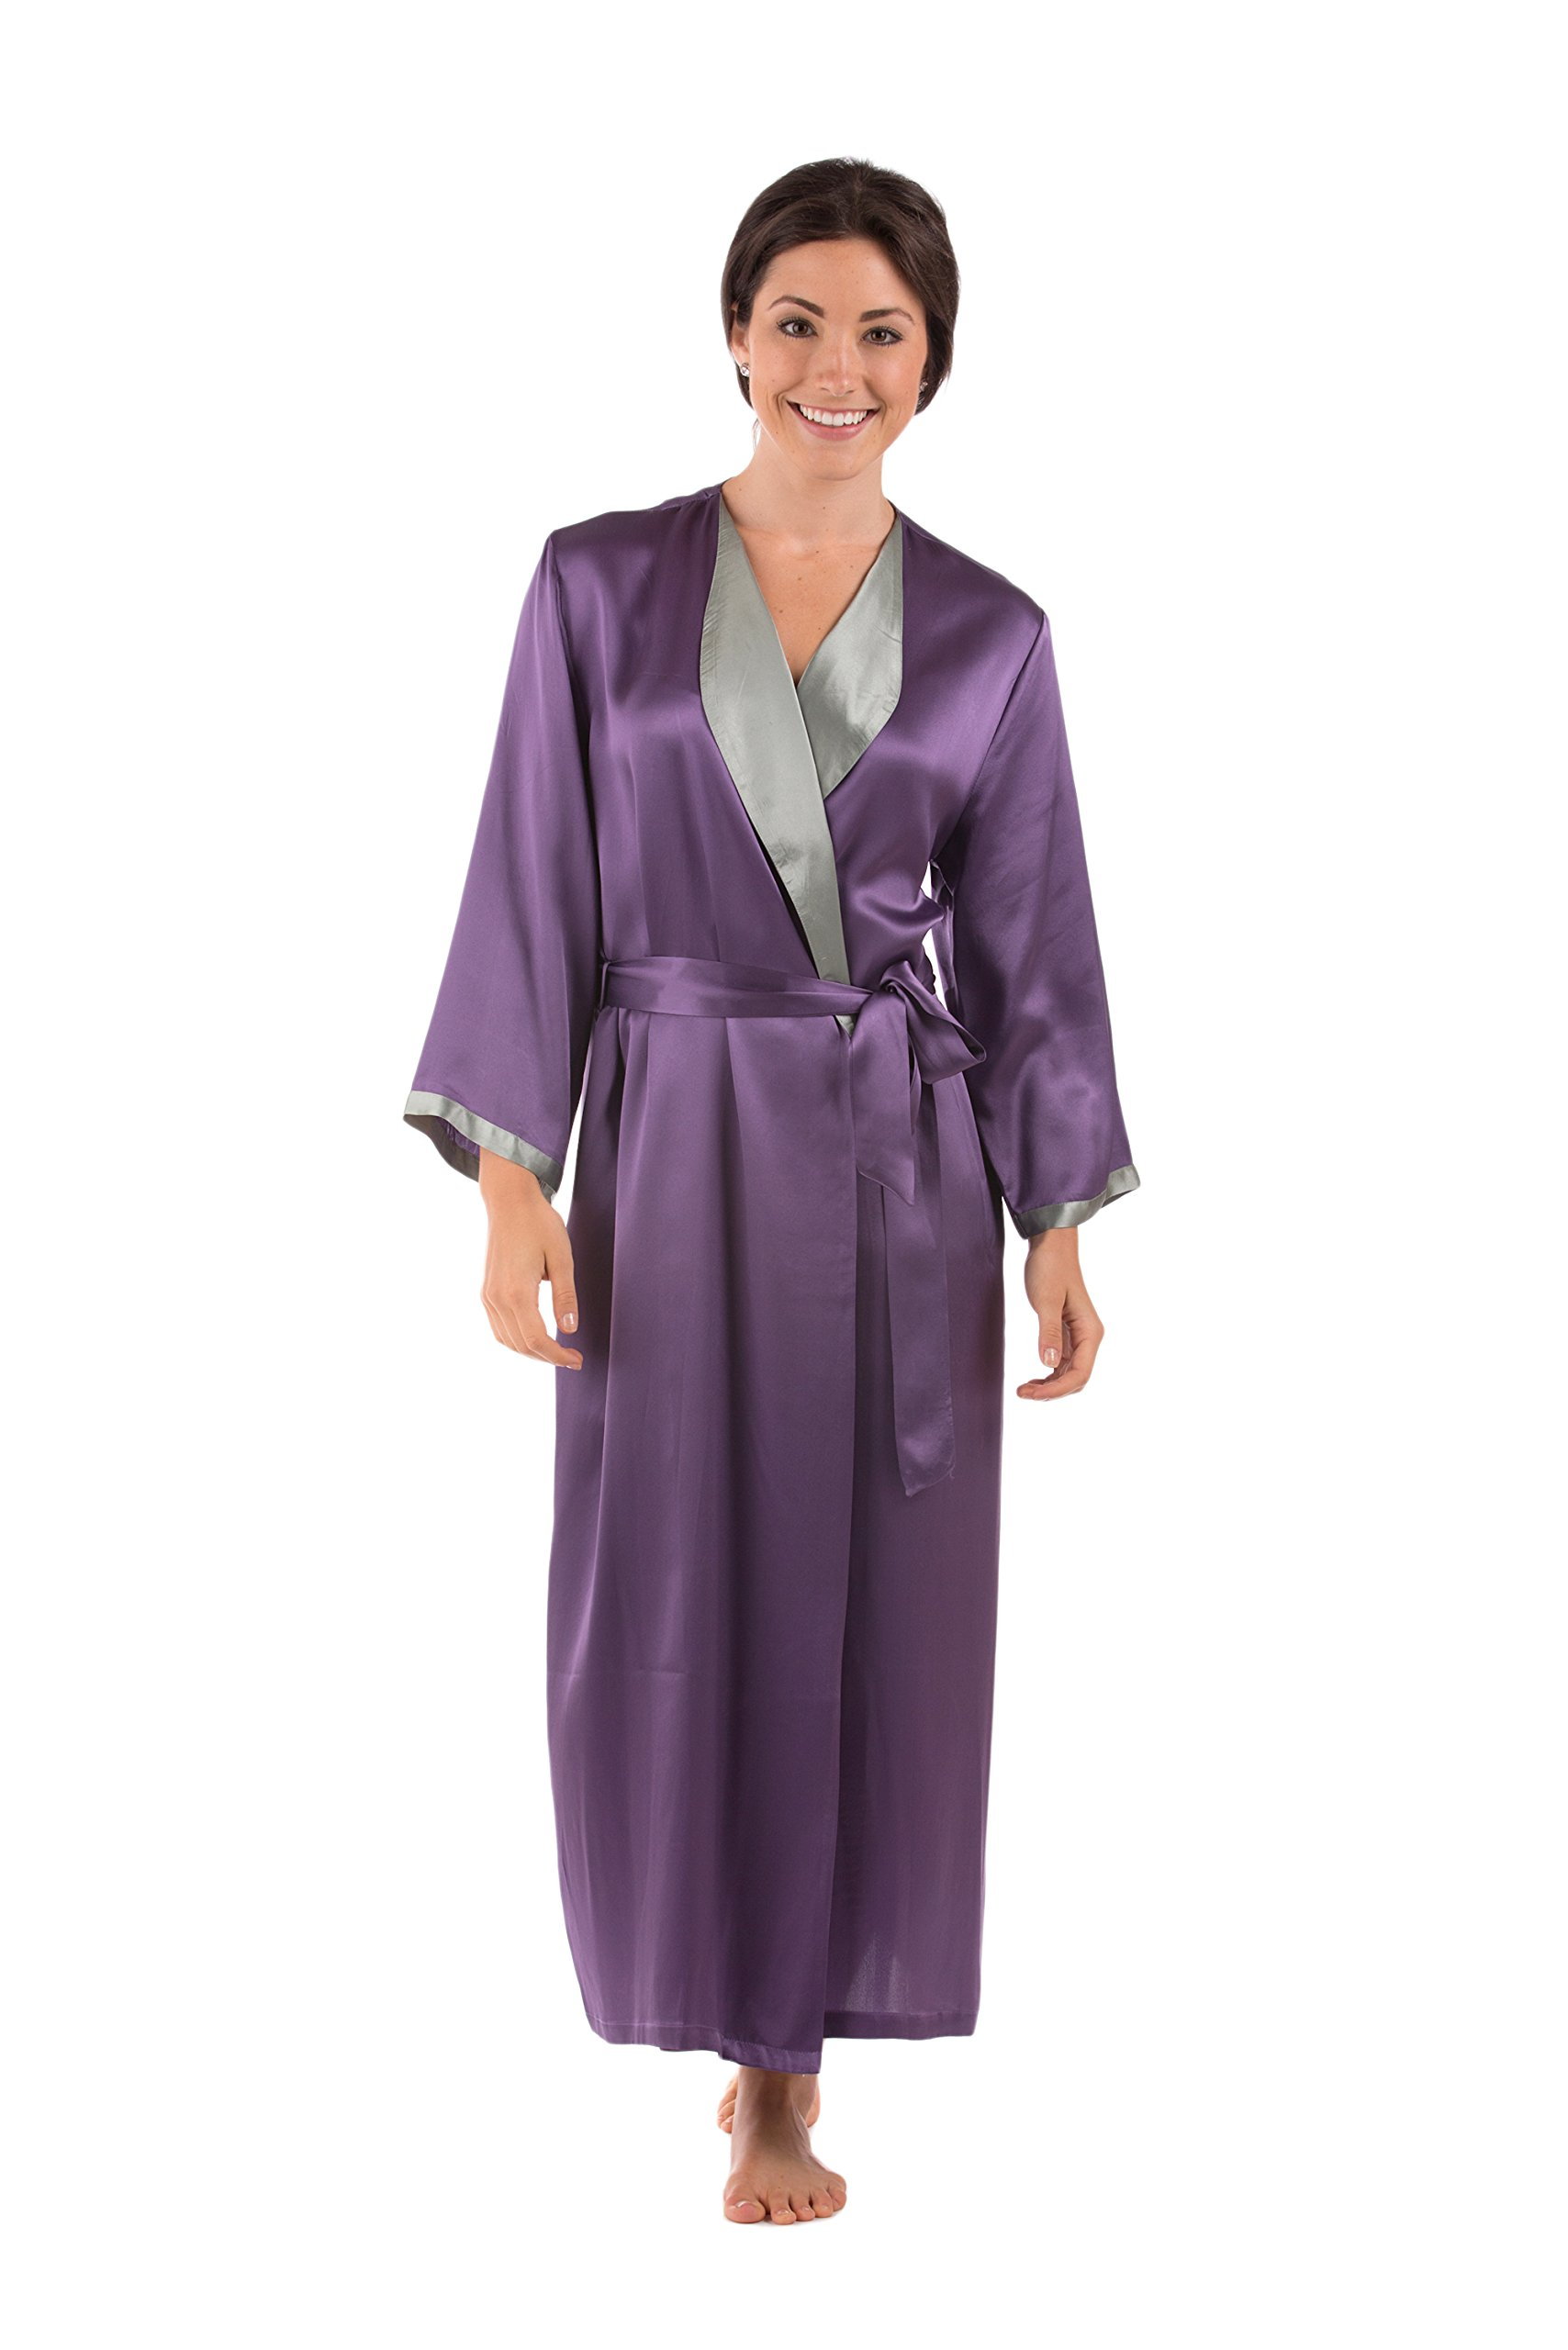 TexereSilk Women's Luxury Long Silk Bathrobe (Grape, Large/X-Large) Mother's Day Gift Suggestions WS0102-GRP-LXL